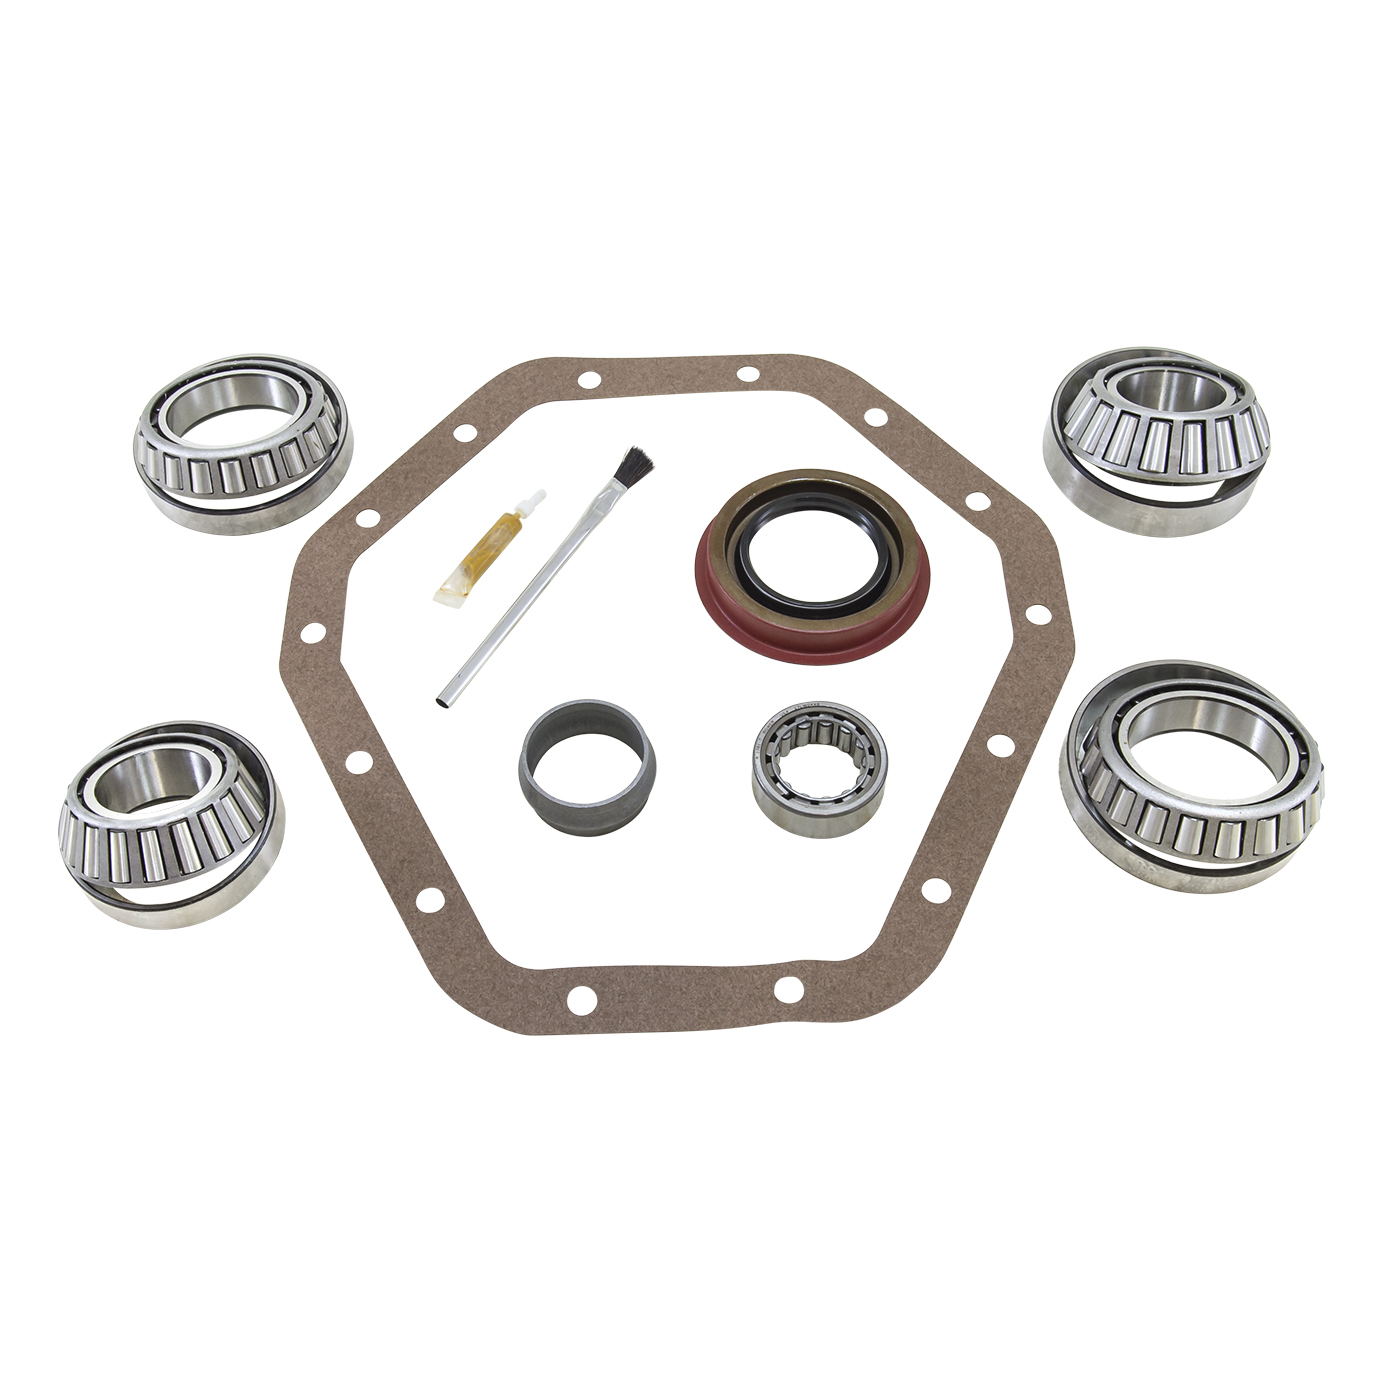 ZBKGM14T-B - USA Standard Bearing kit for '89-'97 10.5